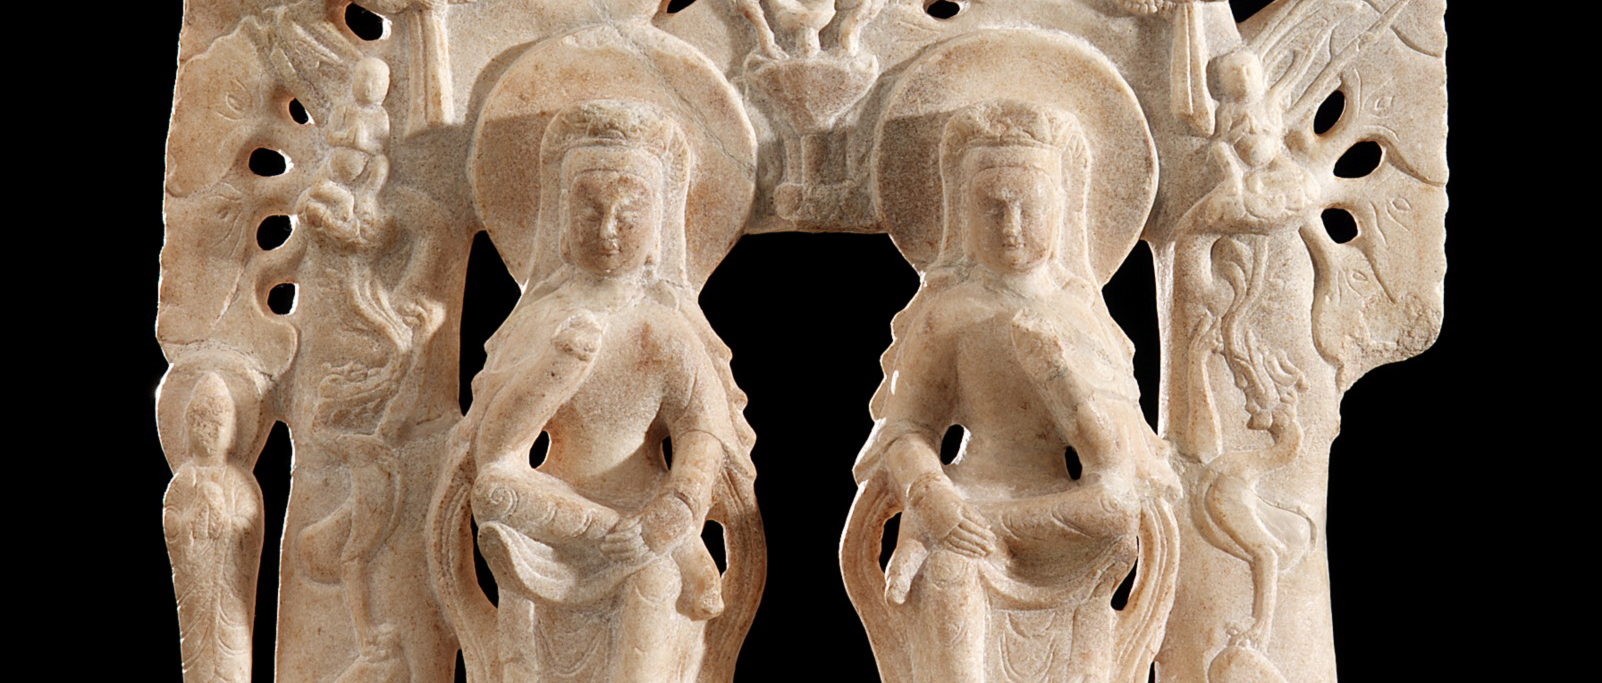 stone carving of 2 people